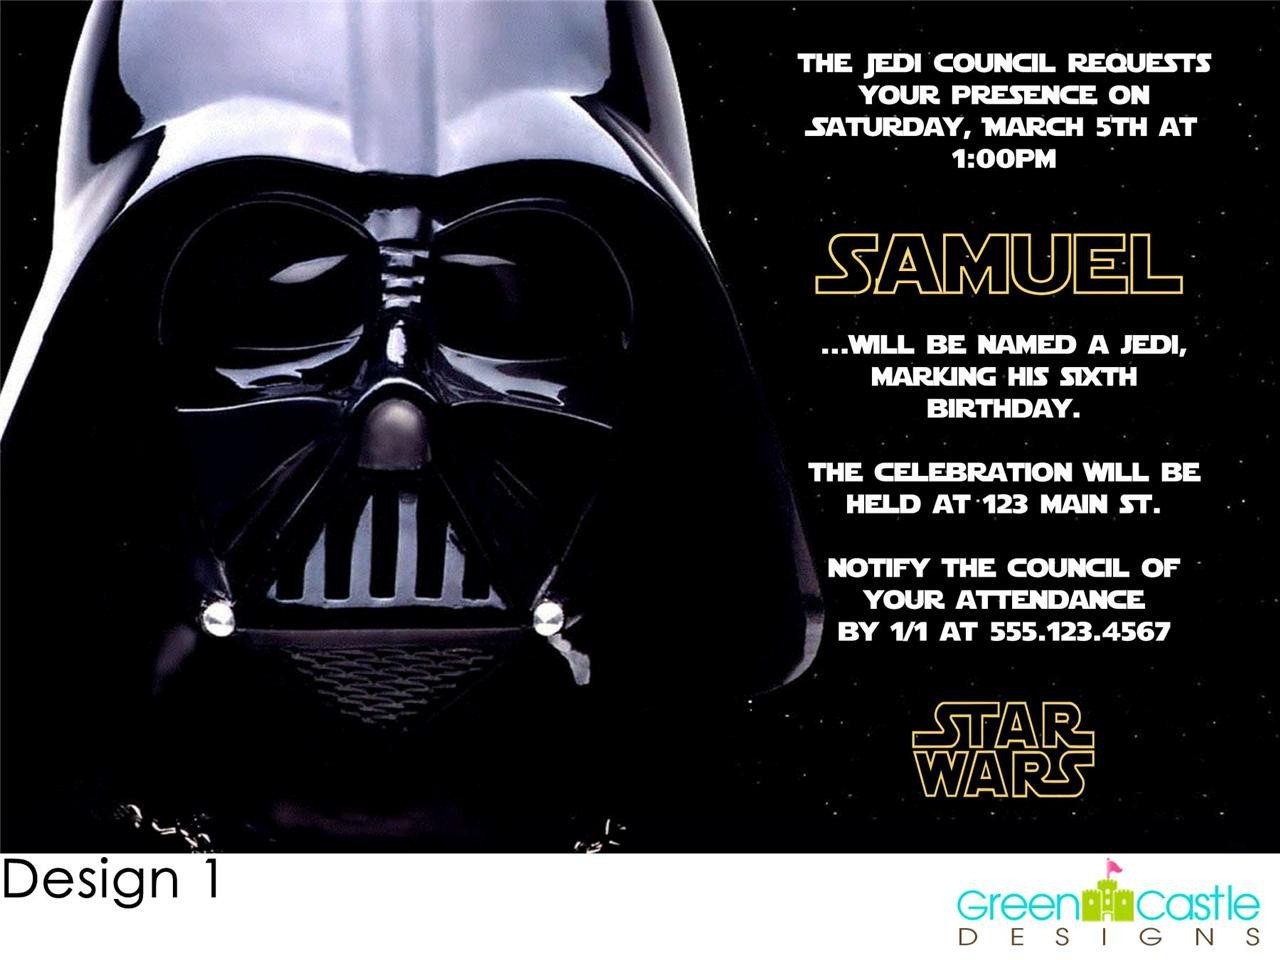 Star Wars Invitations Template Free Star Wars Birthday Party Invitations Templates